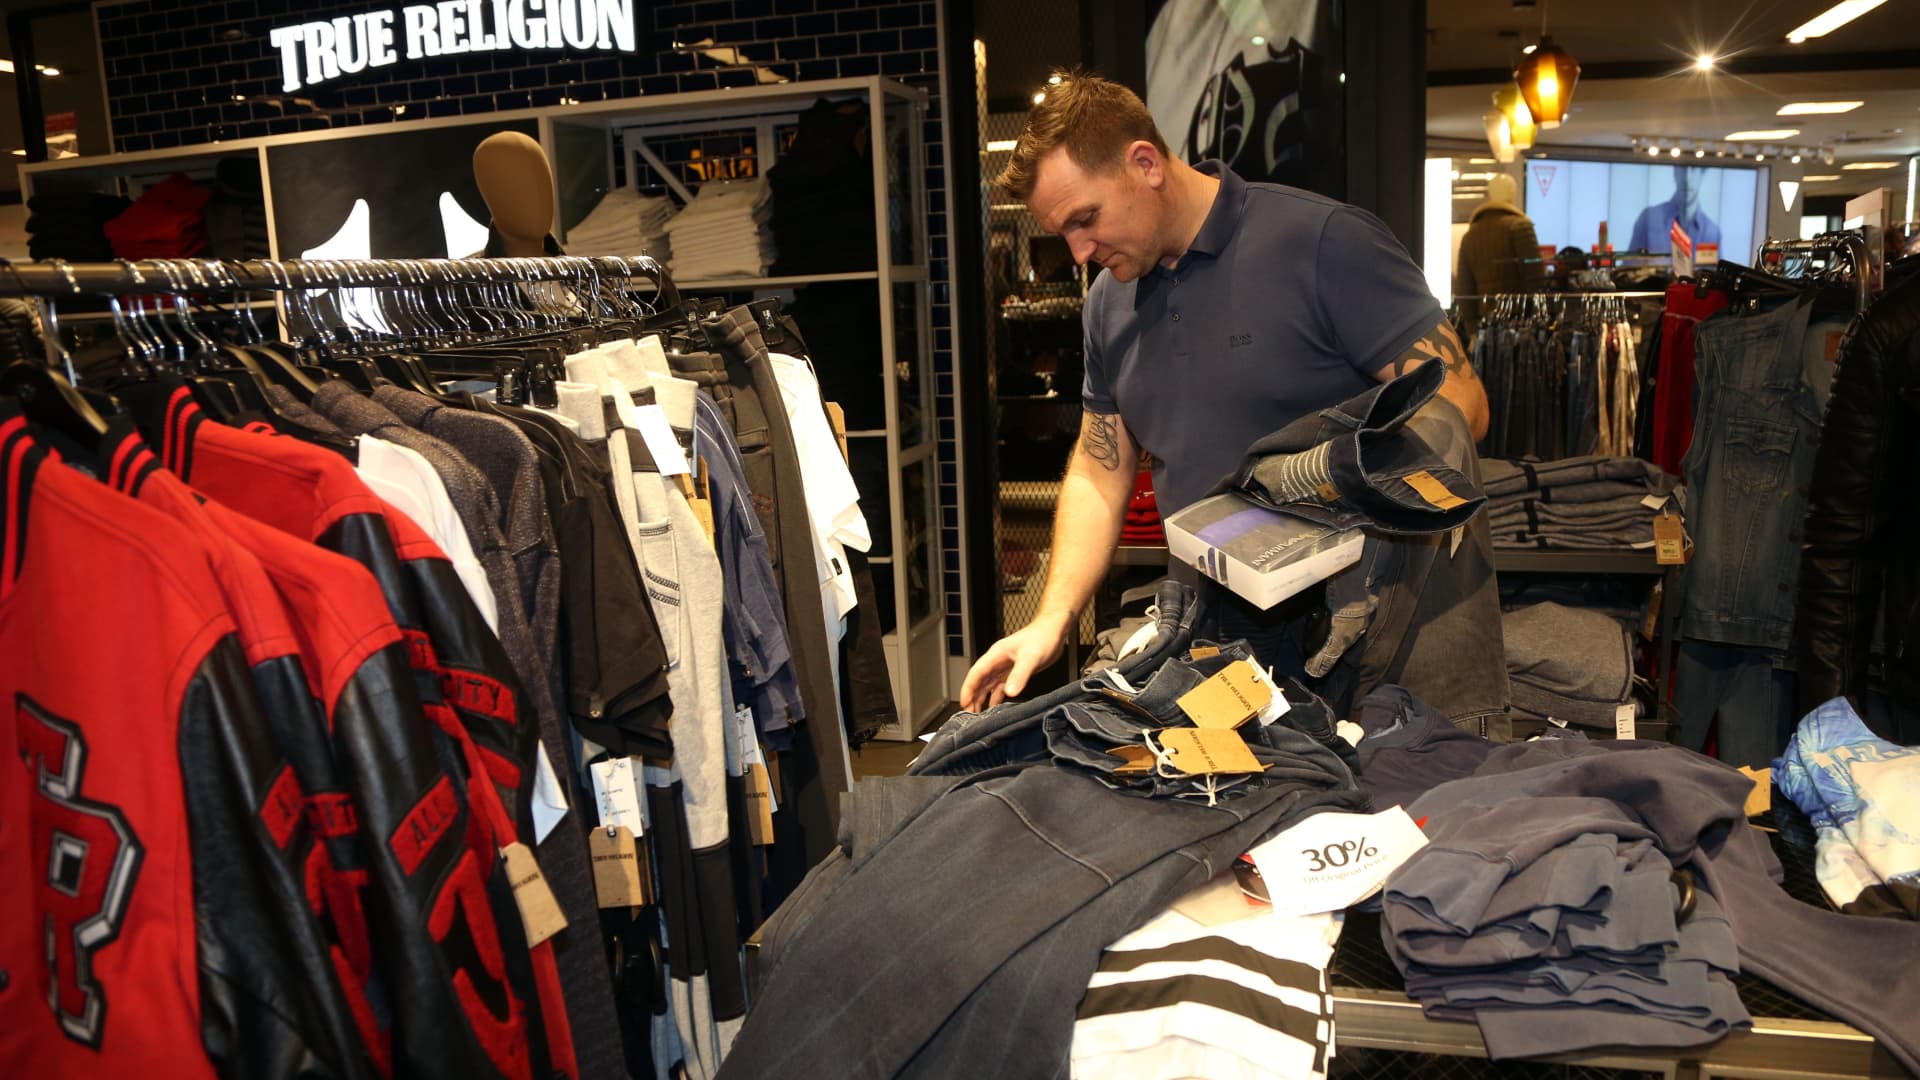 A man shops for clothes in Macy's department store in Herald Square, New York.